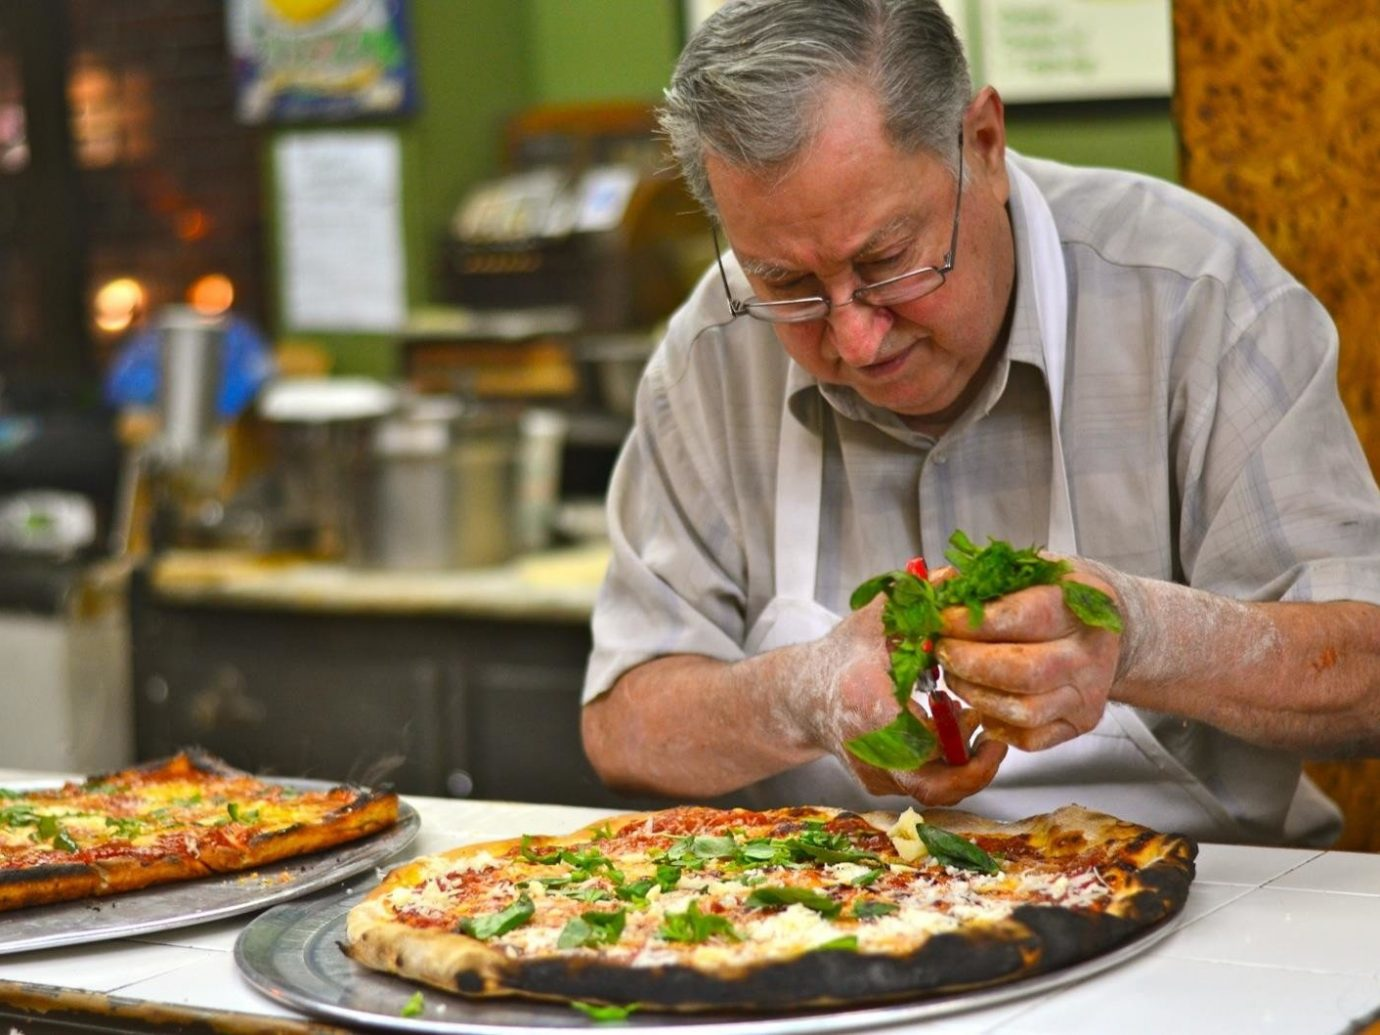 Brooklyn City Food + Drink NYC person food pizza man dish indoor cuisine professional cook chef meal appetizer brunch recipe supper snack food